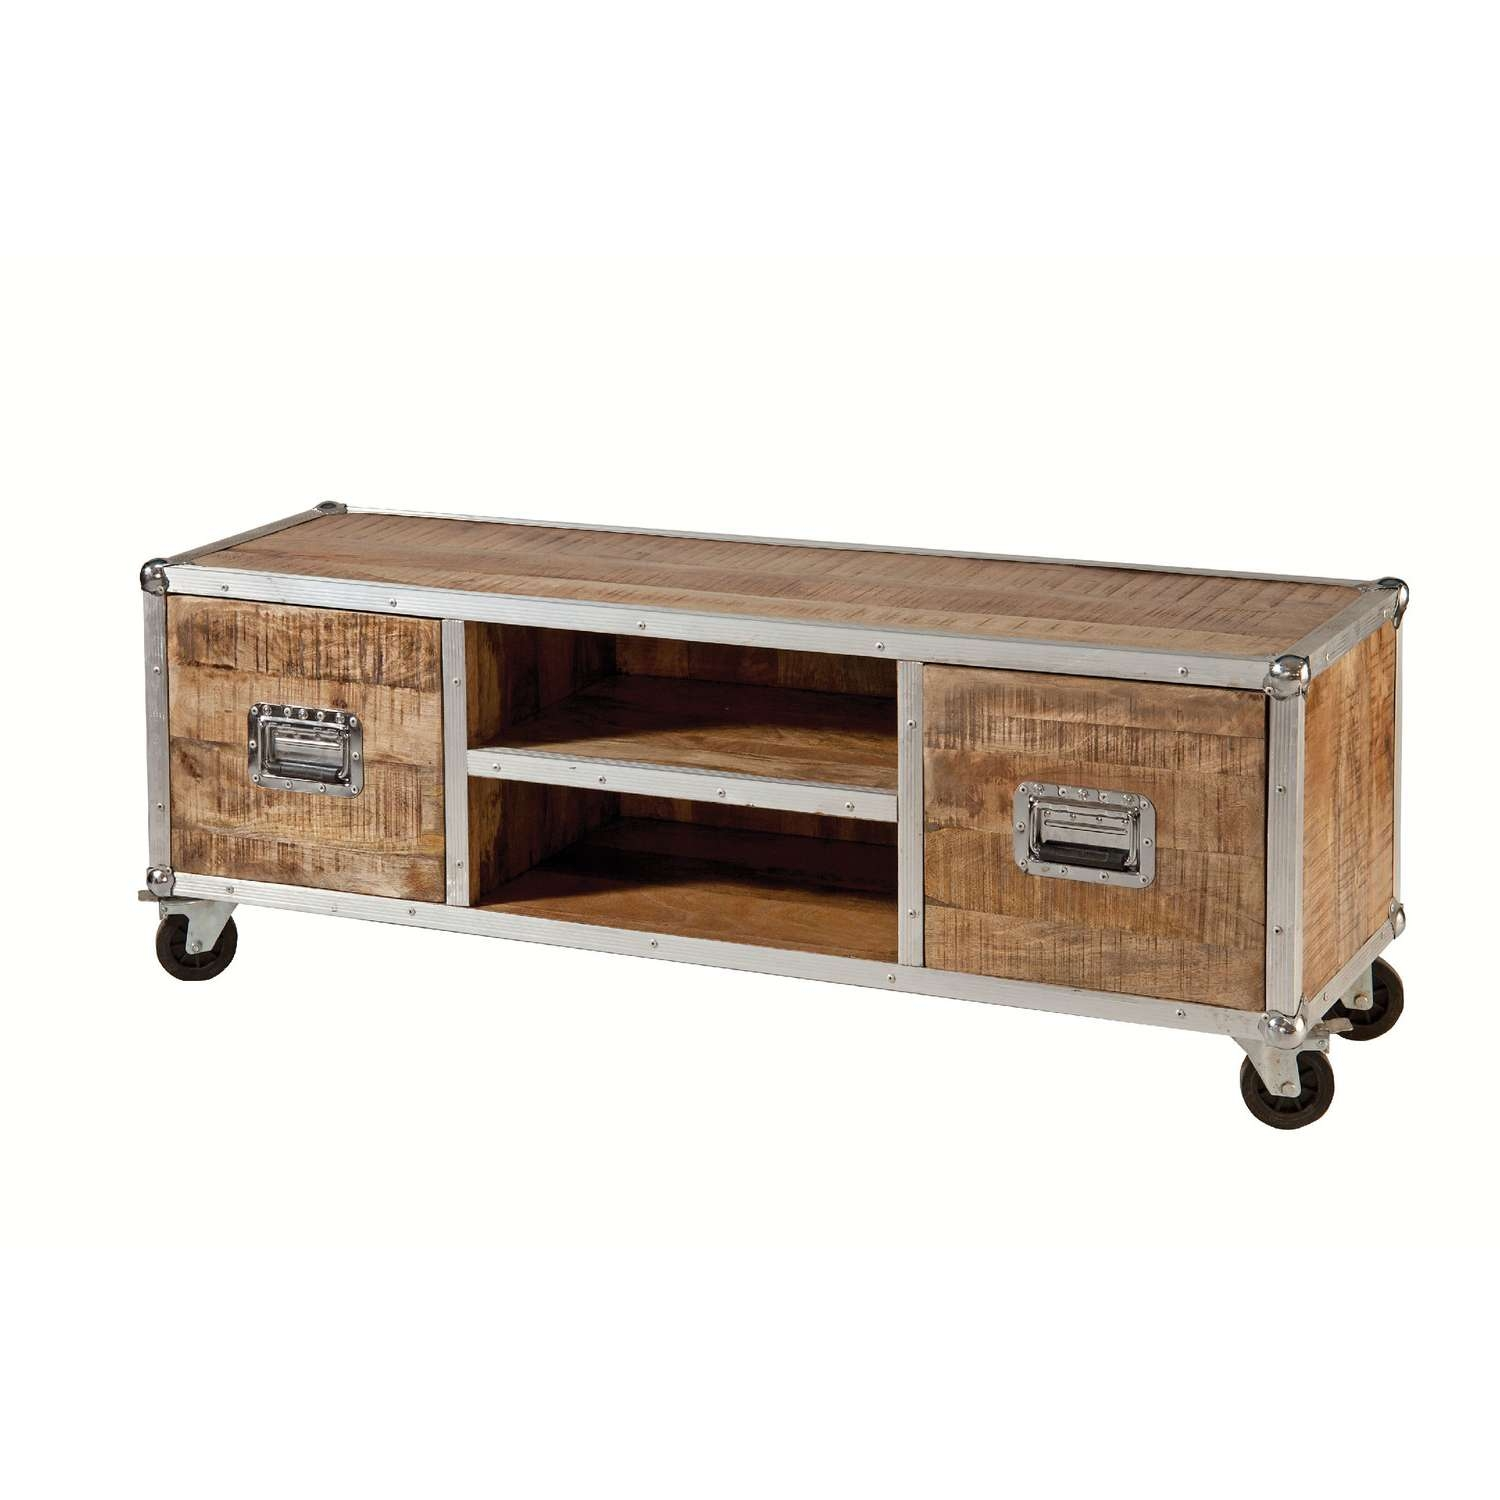 Furniture: Reclaimed Wood Tv Stand With Shelves And Drawers For With Regard To Wooden Tv Stands With Wheels (View 7 of 15)